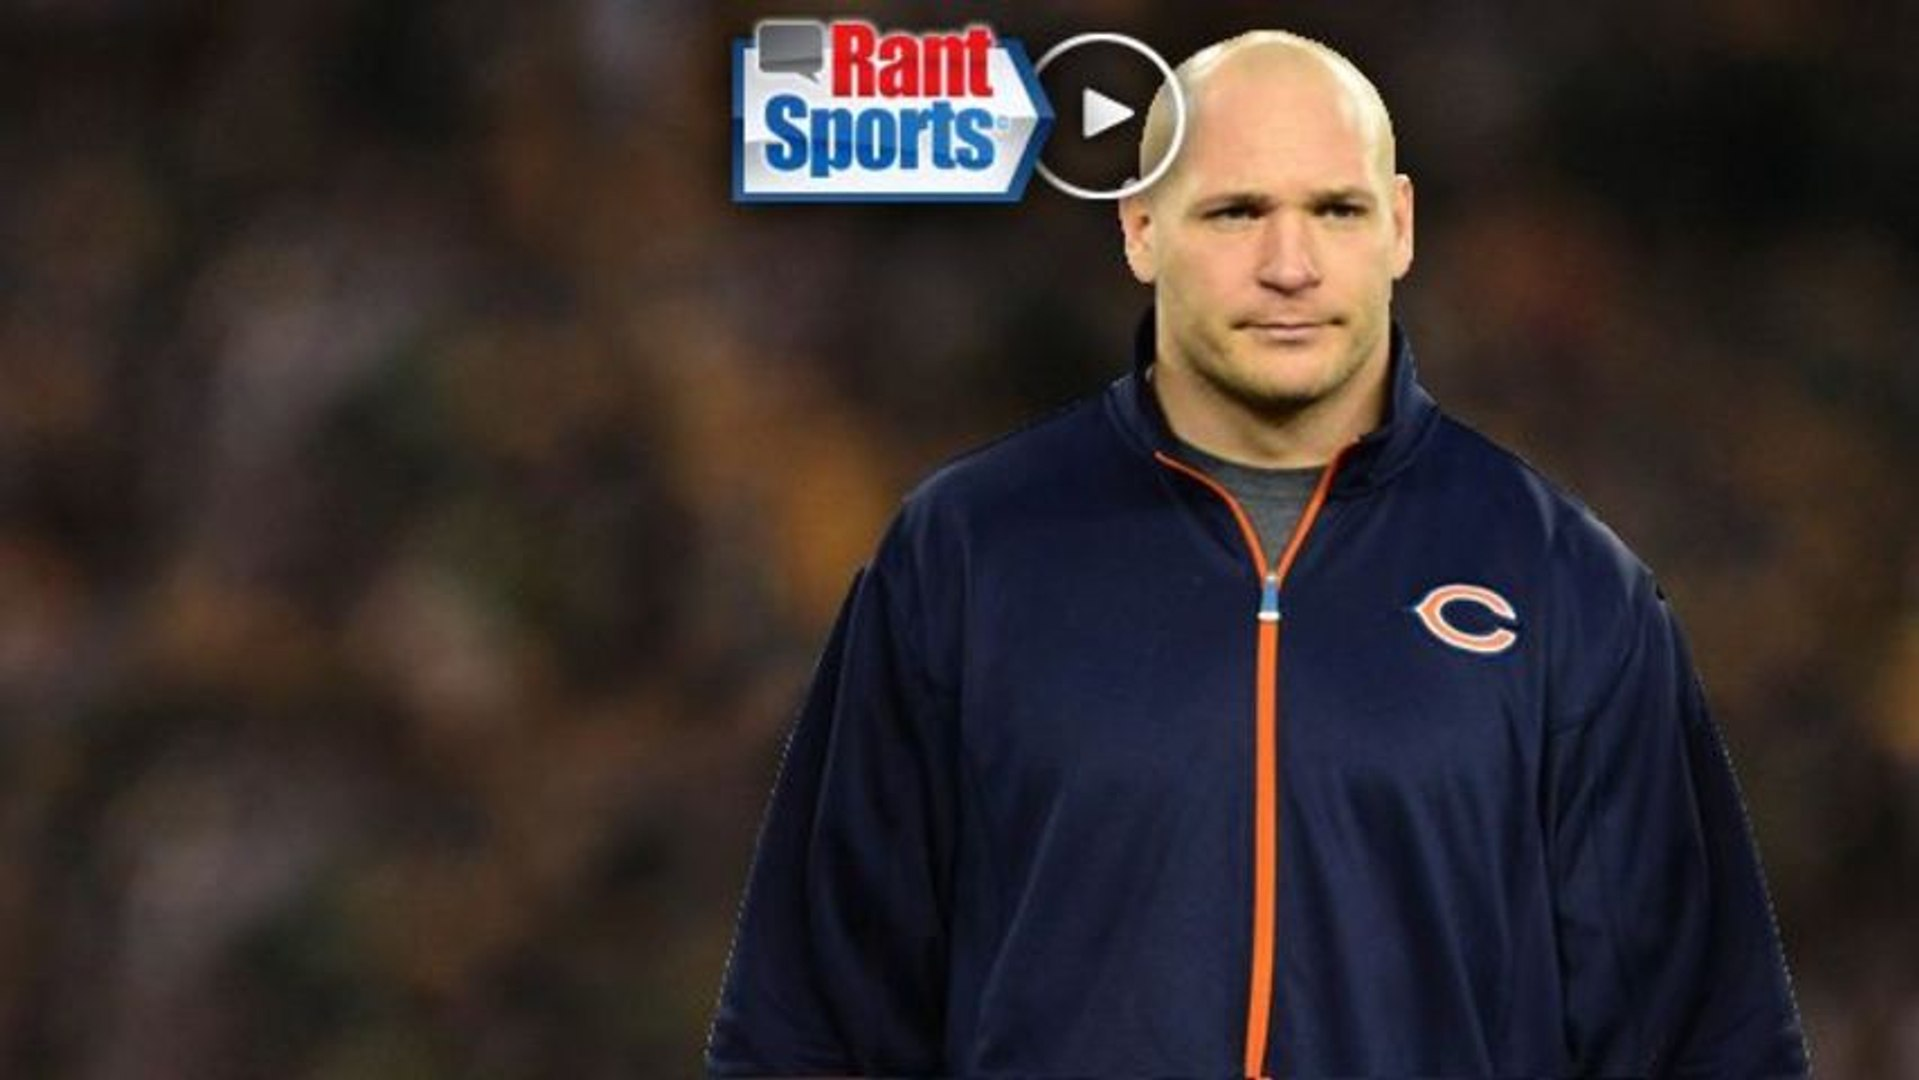 Brian Urlacher's Claim of Fake Injuries Could Spark War Between NFL, Players